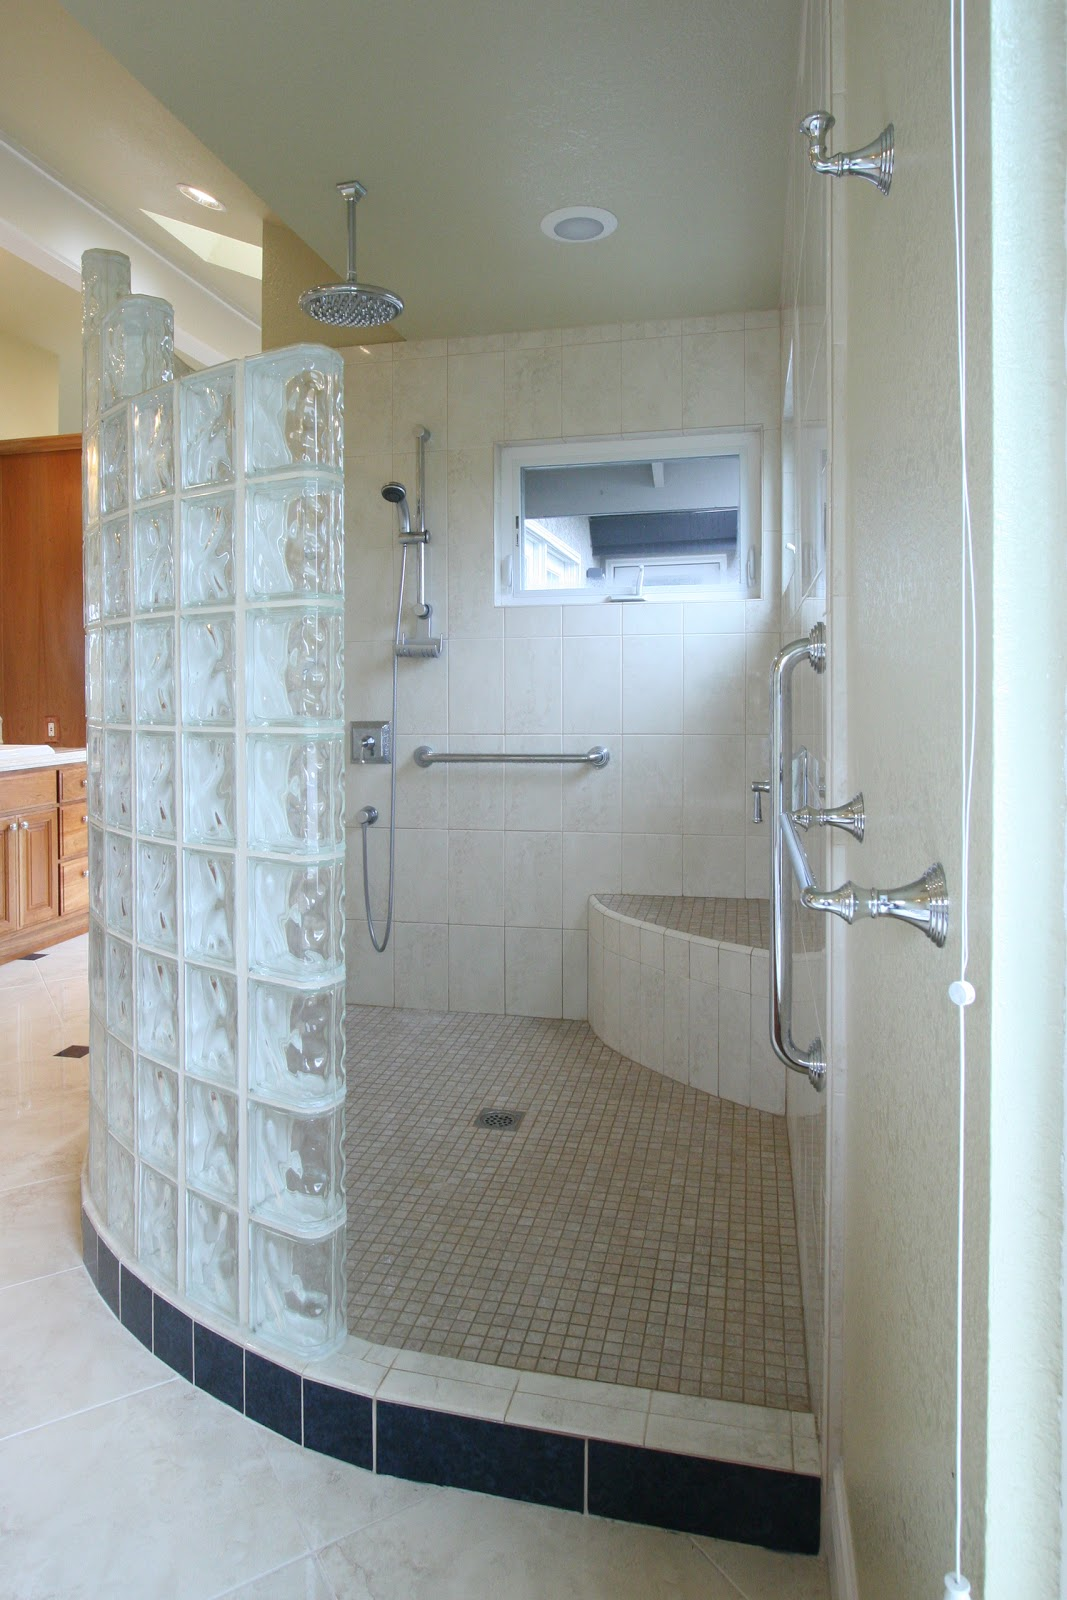 Kitchen And Bath Construction And Remodeling Walk In Shower After Images